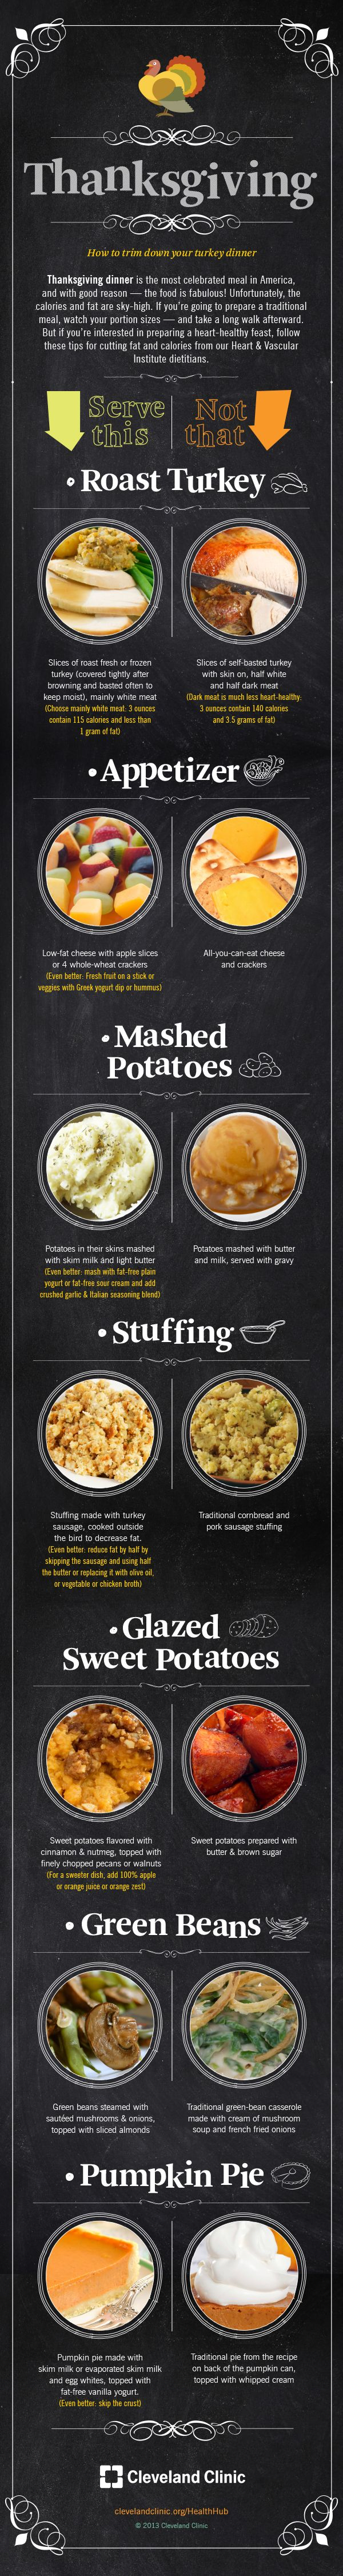 Use THIS guide to trim down your #turkey day calorie count. #thanksgiving #thisnotthat #calorie #holidays #infographic